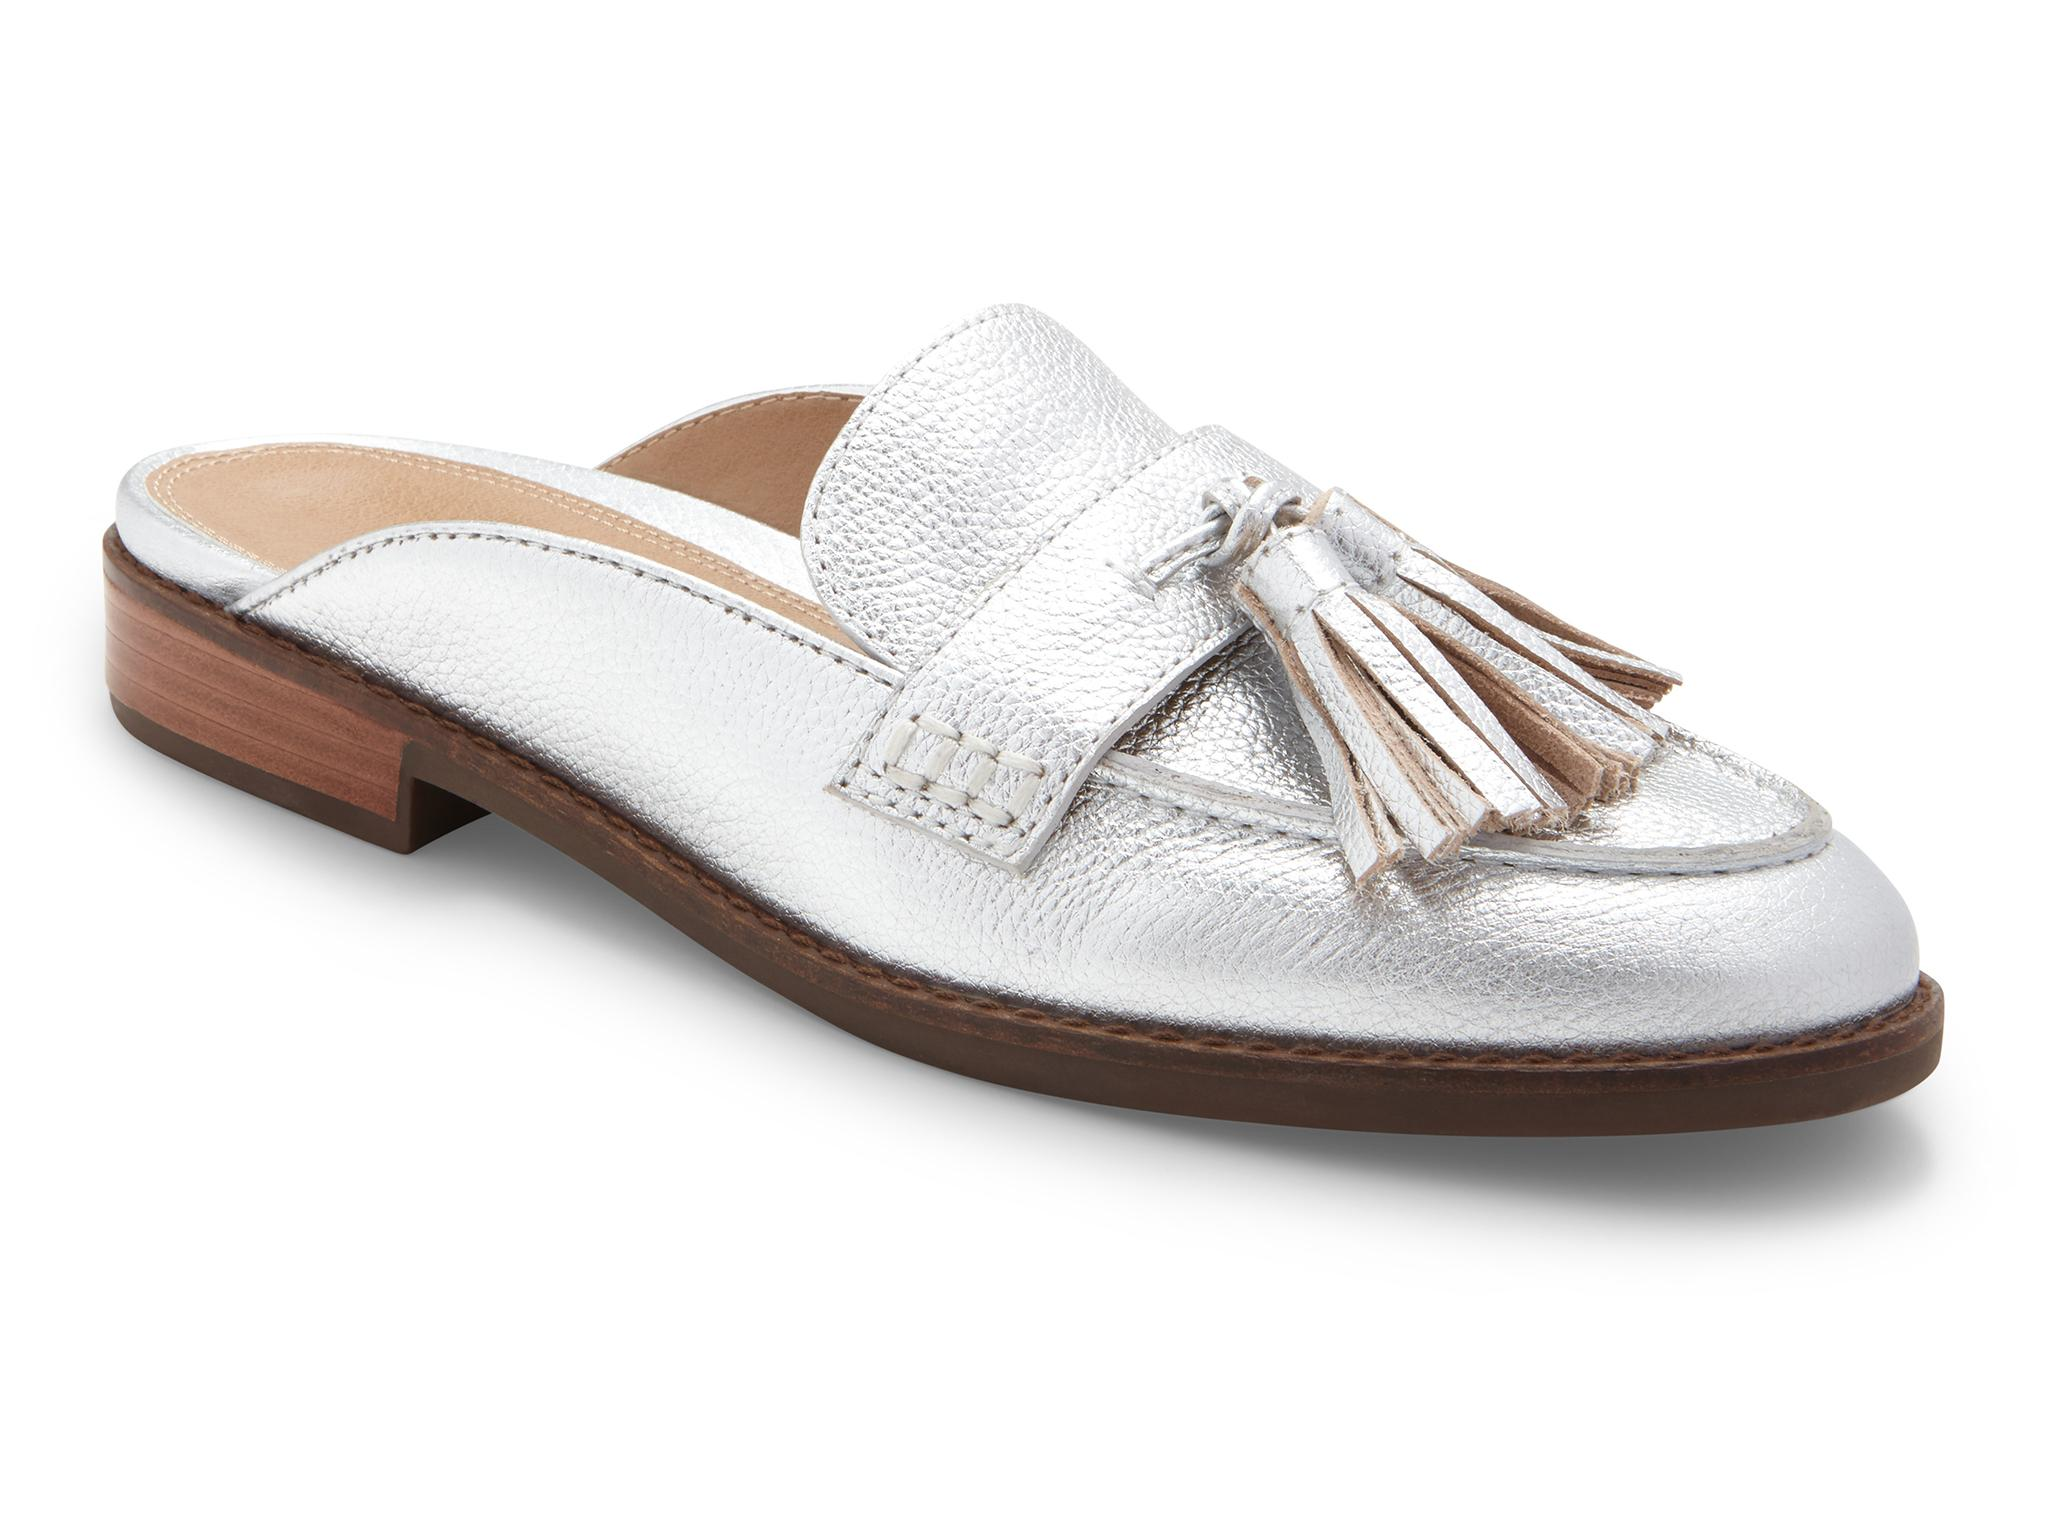 Best orthopaedic shoes for women guide: Keeping your feet